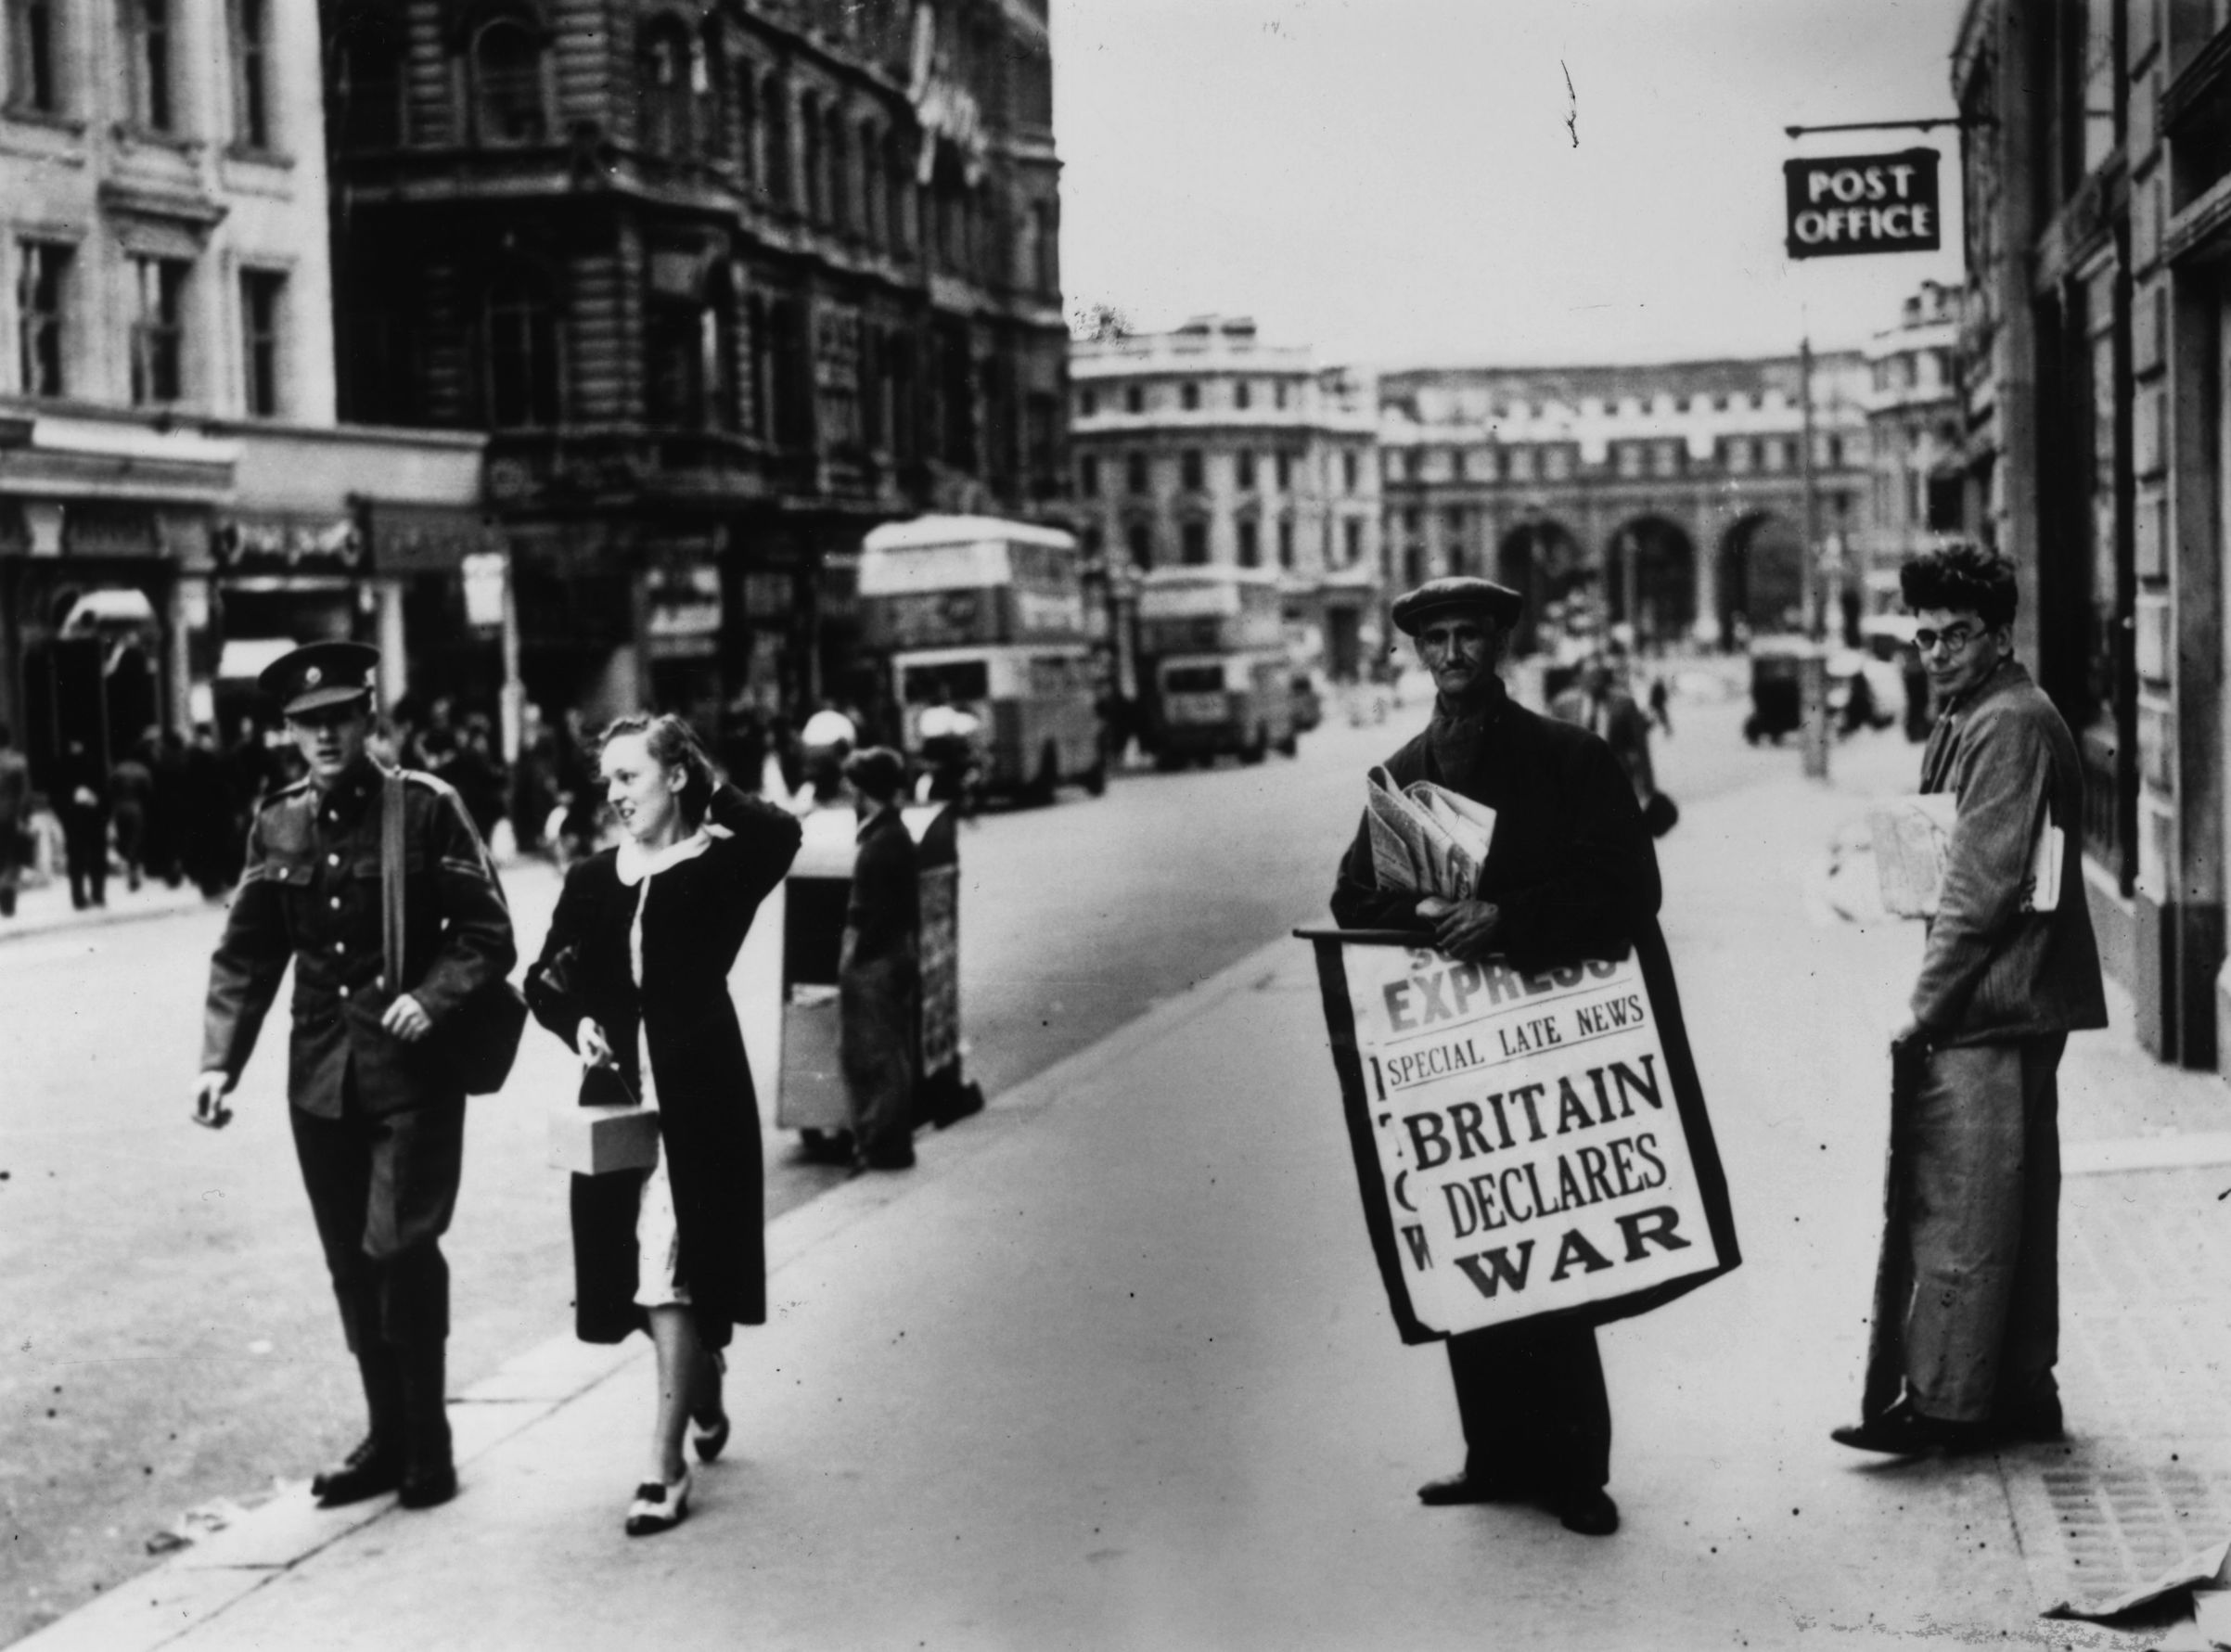 On Sept. 3, 1939, a newspaper seller carries a board  pronouncing the declaration of war between Britain and Germany, on the Strand, heading towards Admiralty Arch in London.